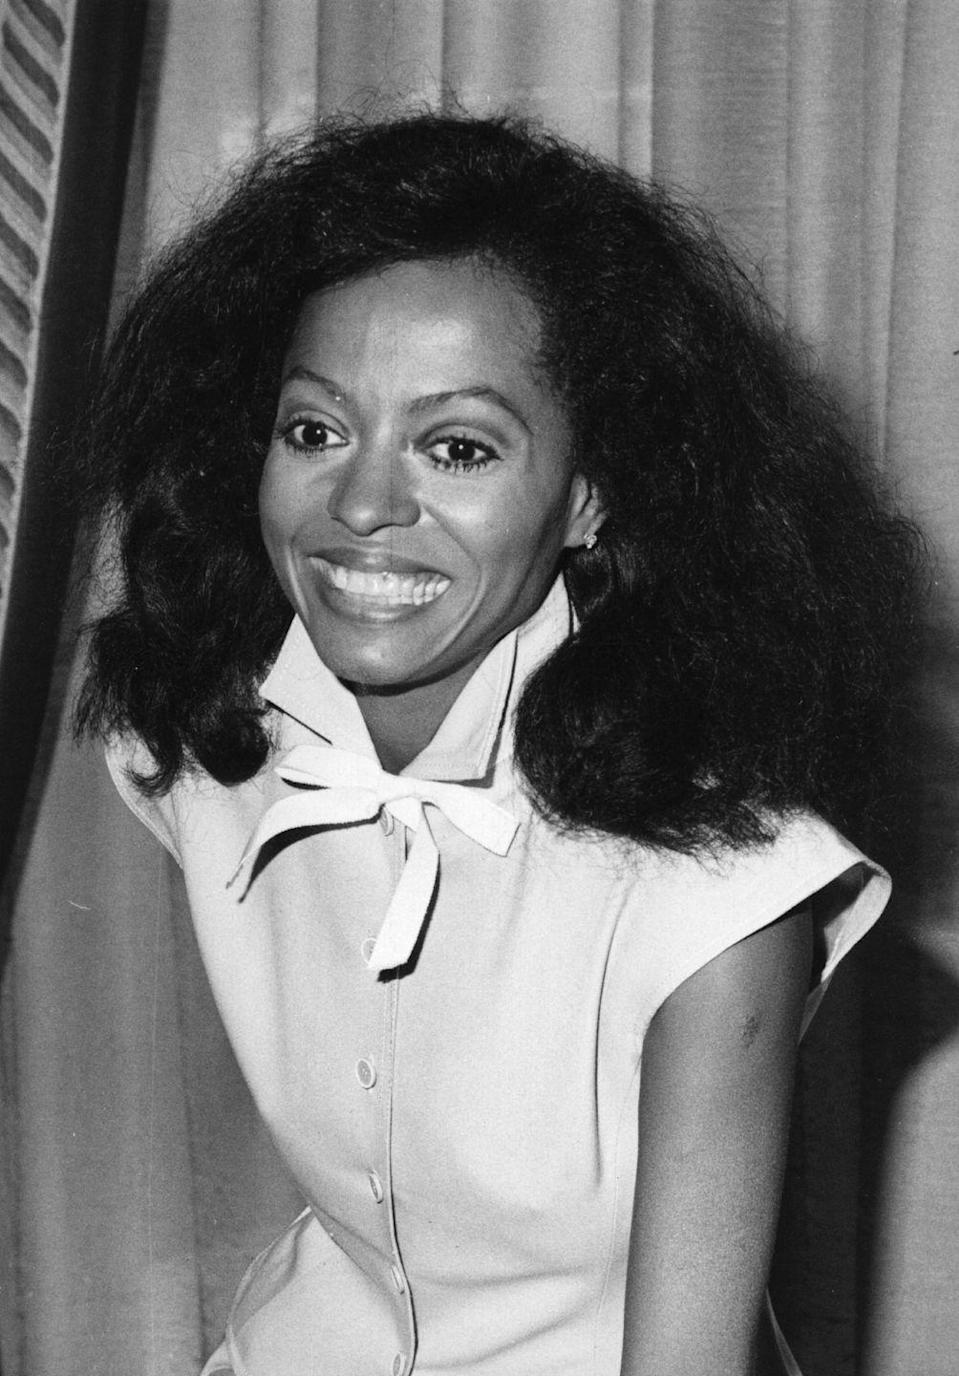 <p>Clearly a natural beauty, Ross is simply dressed in a sleeveless dress with bow-tie collar. Diana Ross, along with the other Supremes, was eventually inducted into the Rock & Roll Hall of Fame for their contributions to Motown. <br></p>